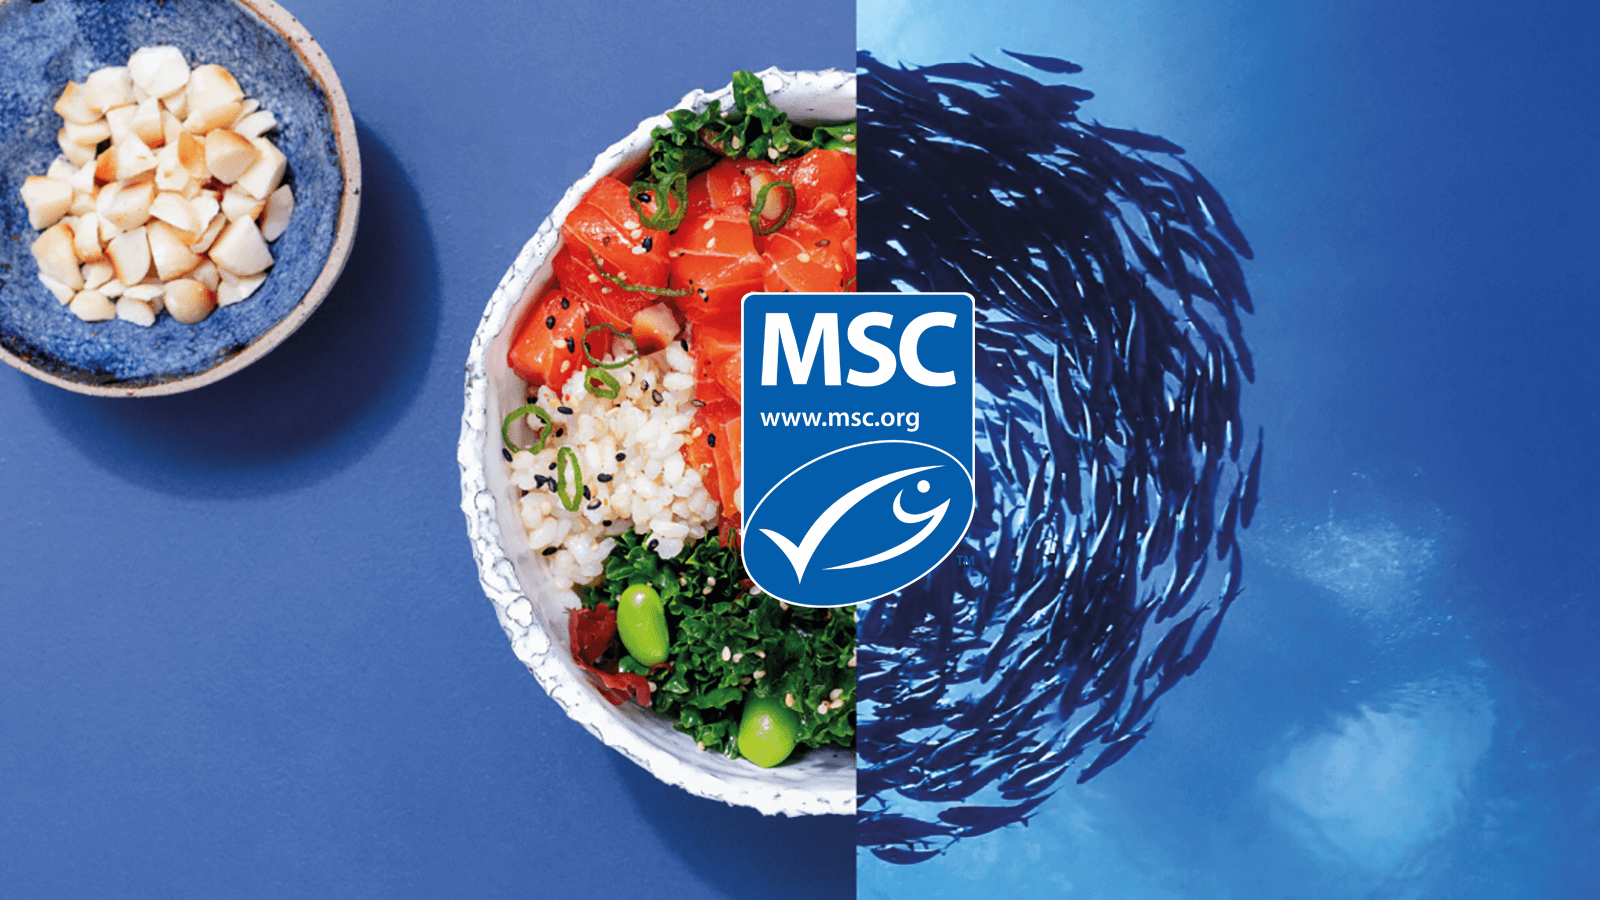 World Oceans Day Marine Stewardship Council